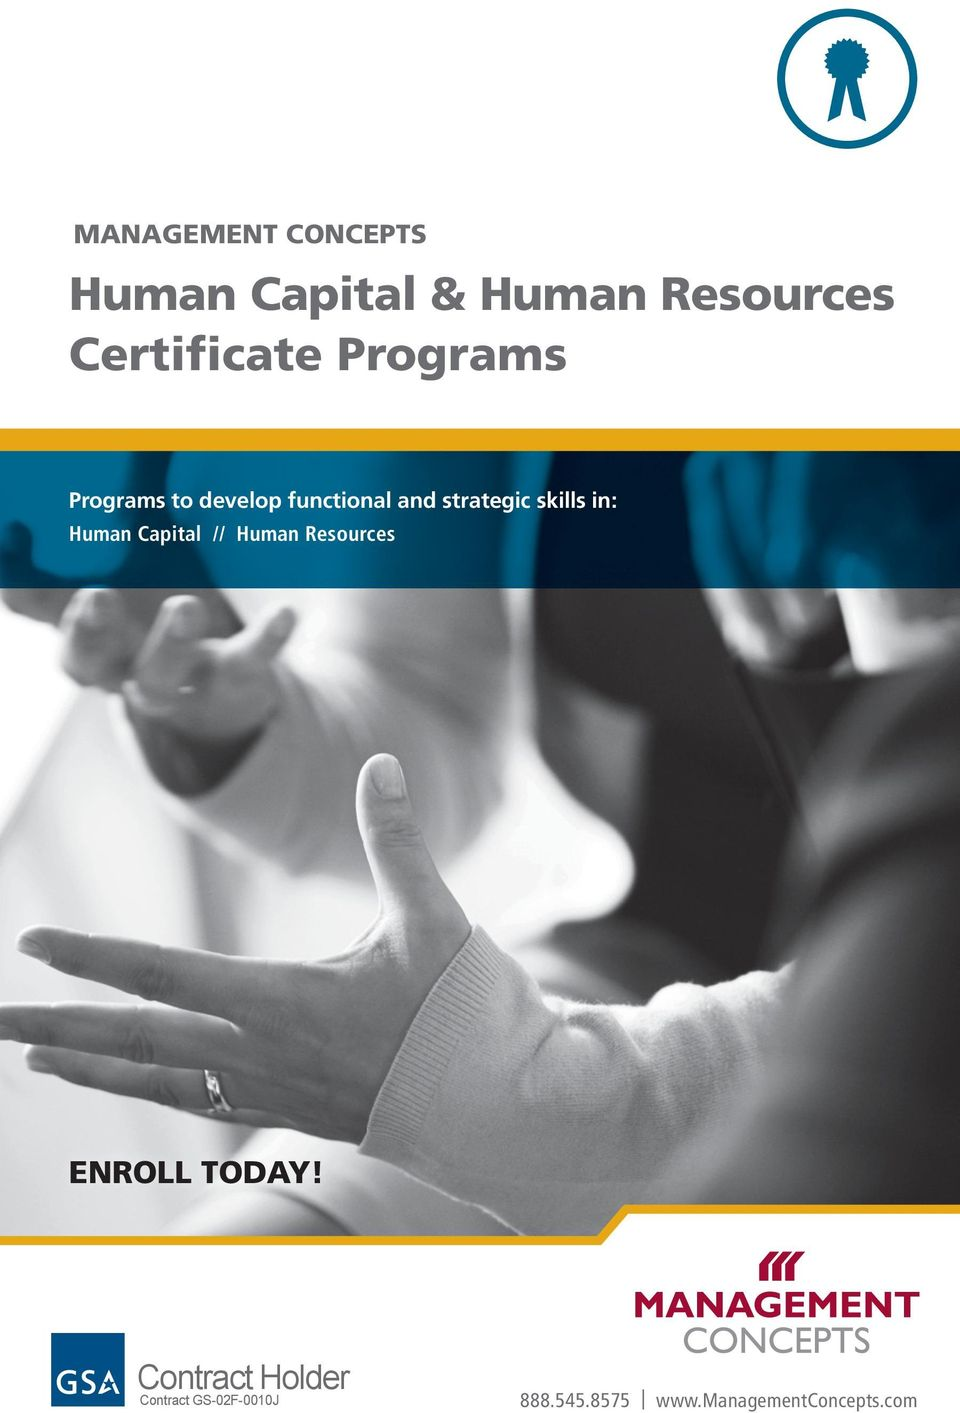 strategic skis in: Human Capita // Human Resources ENROLL